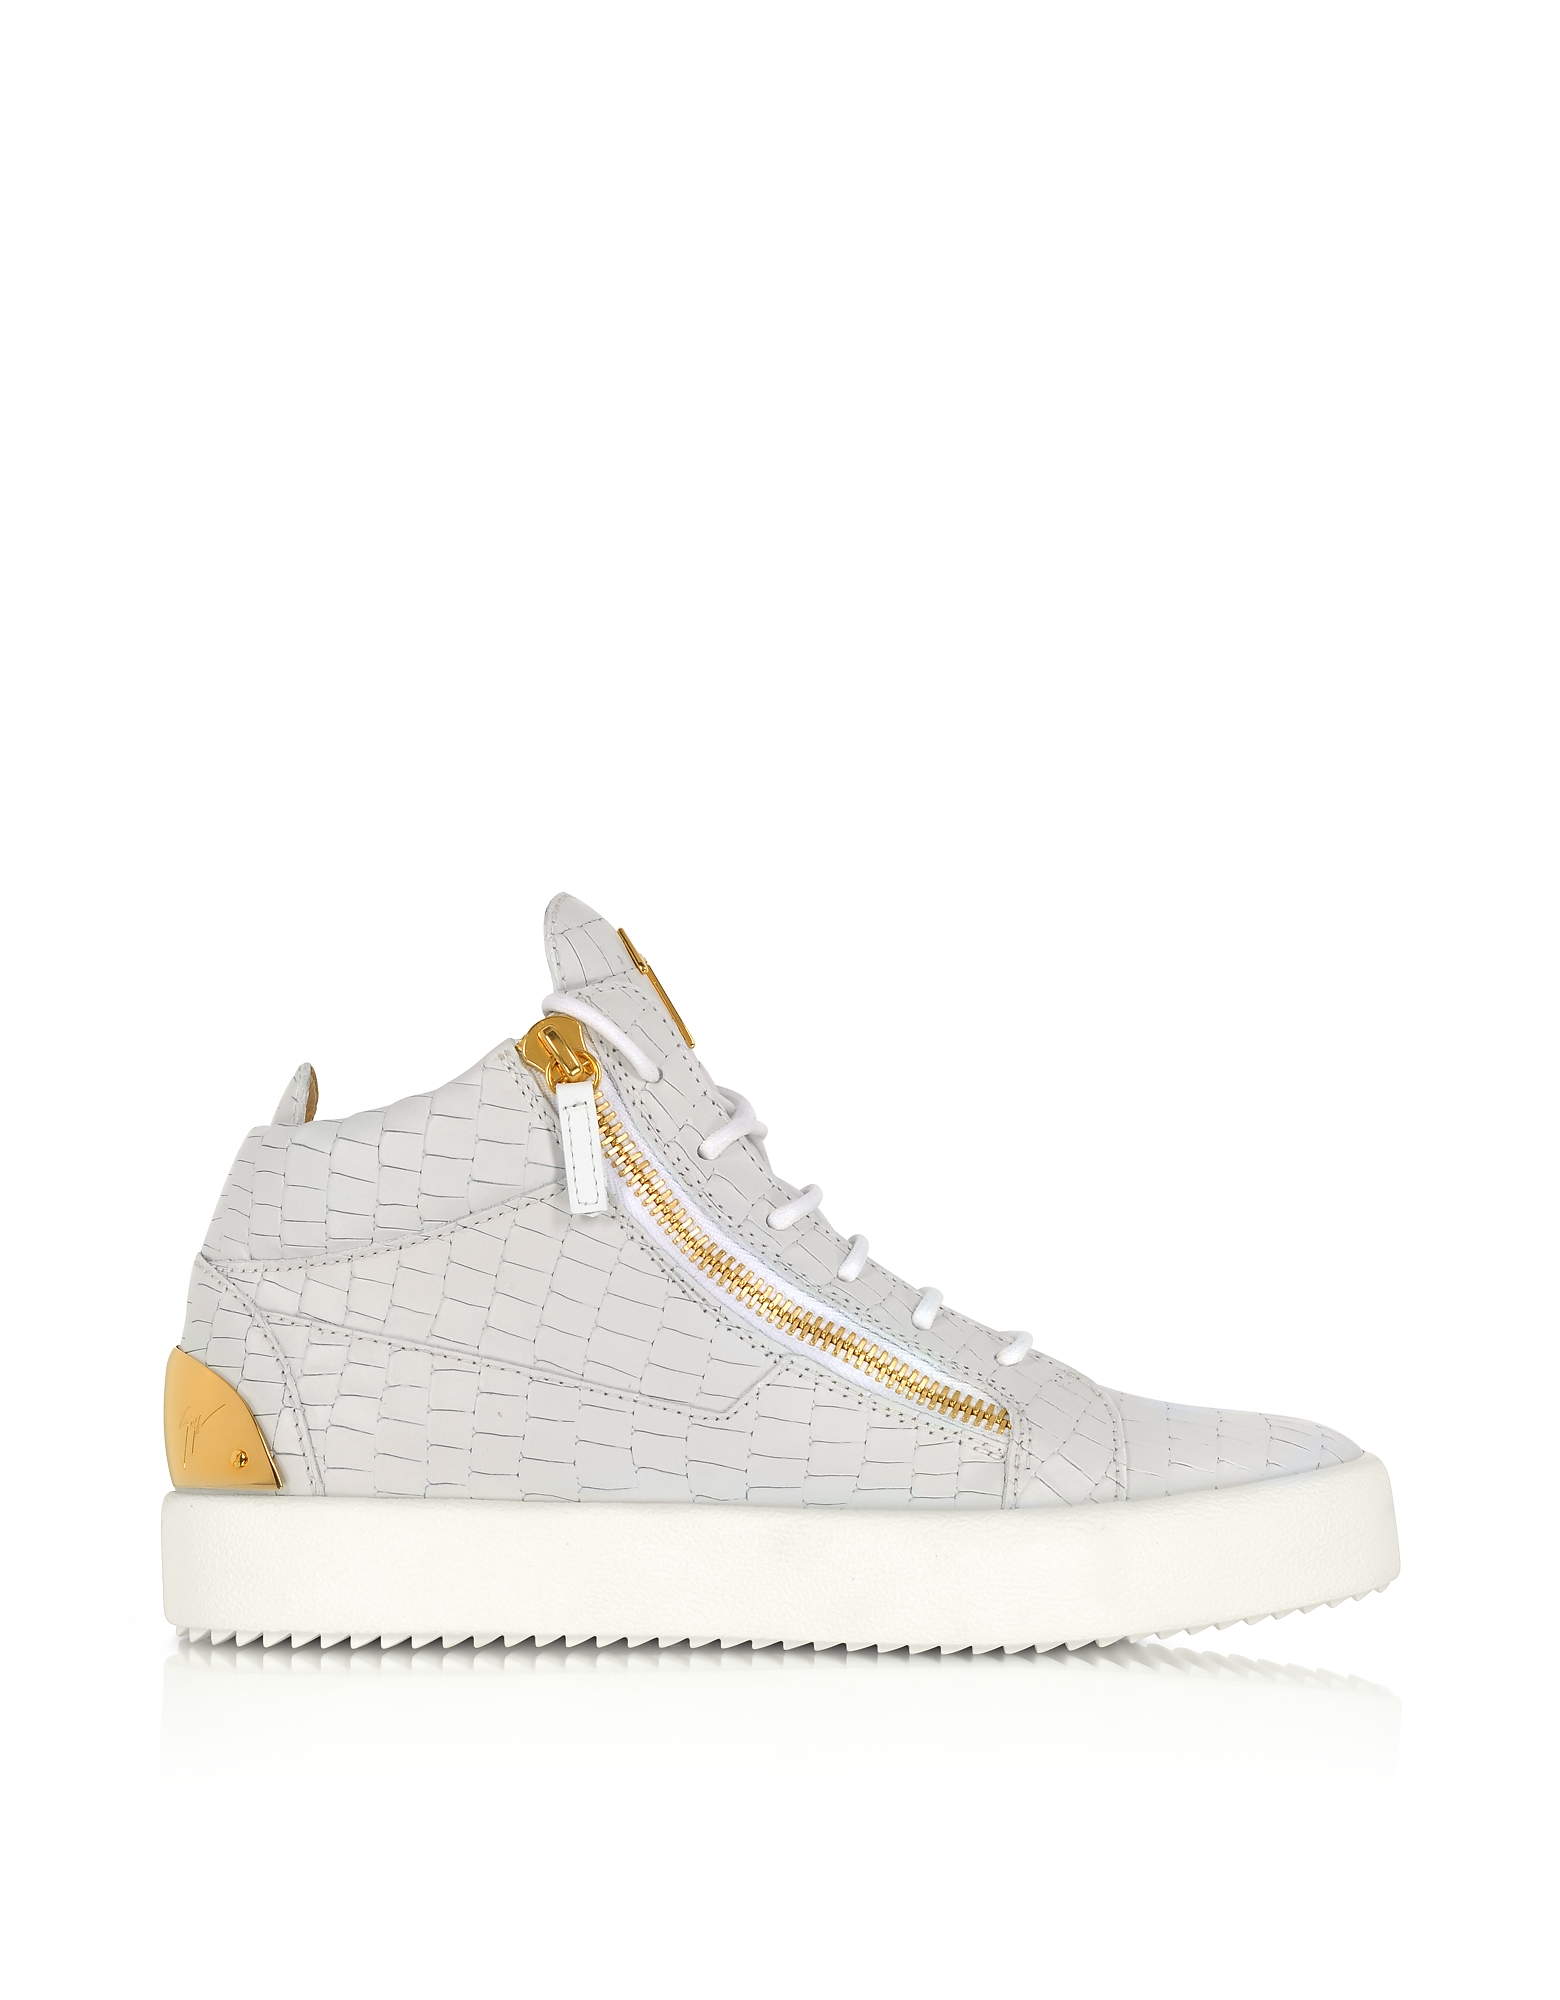 Giuseppe Zanotti Shoes, Kriss White Croco Embossed Mid-Top Sneaker